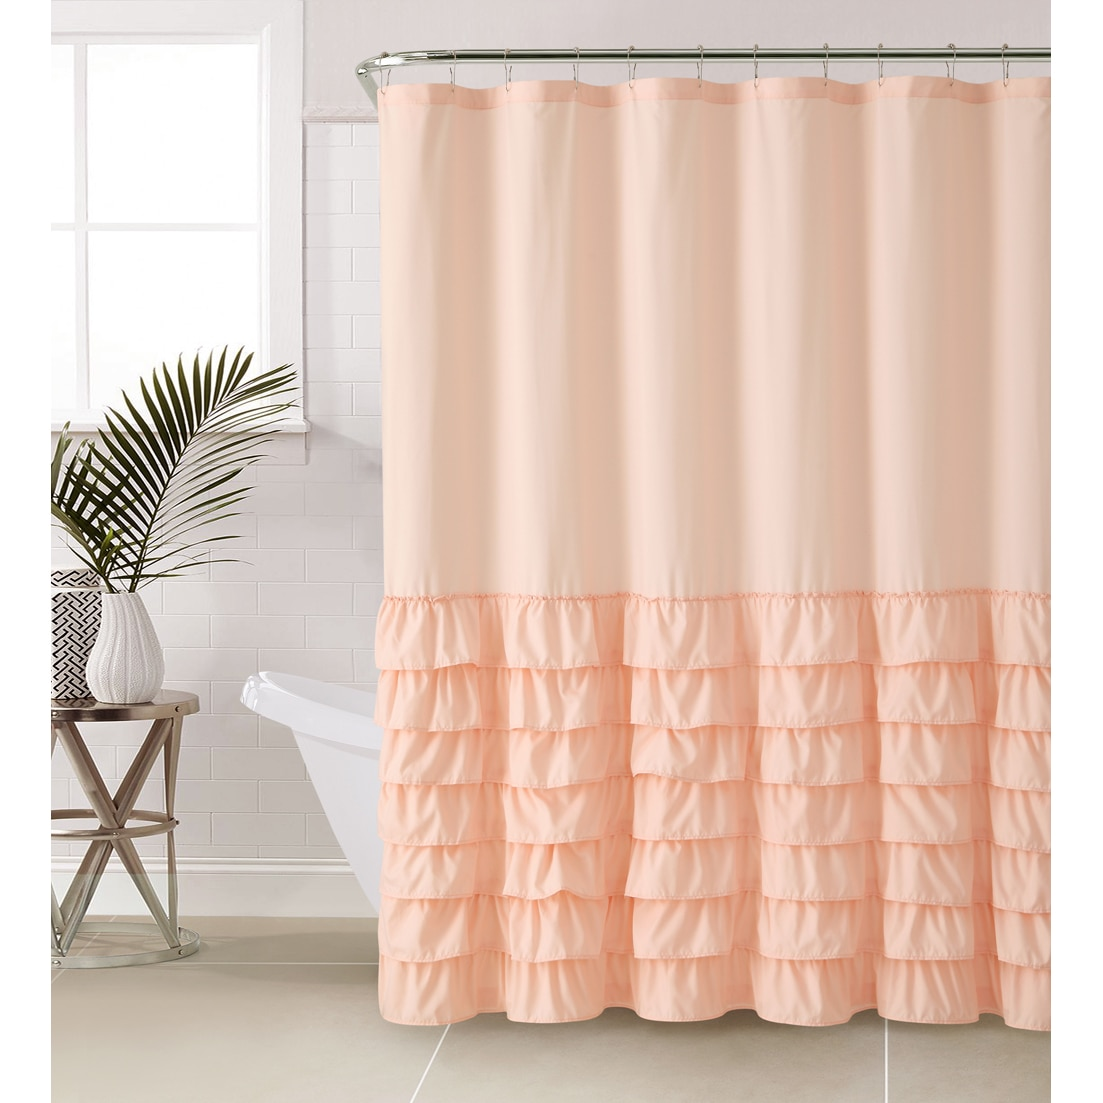 Shop VCNY Melanie Ruffle Shower Curtain